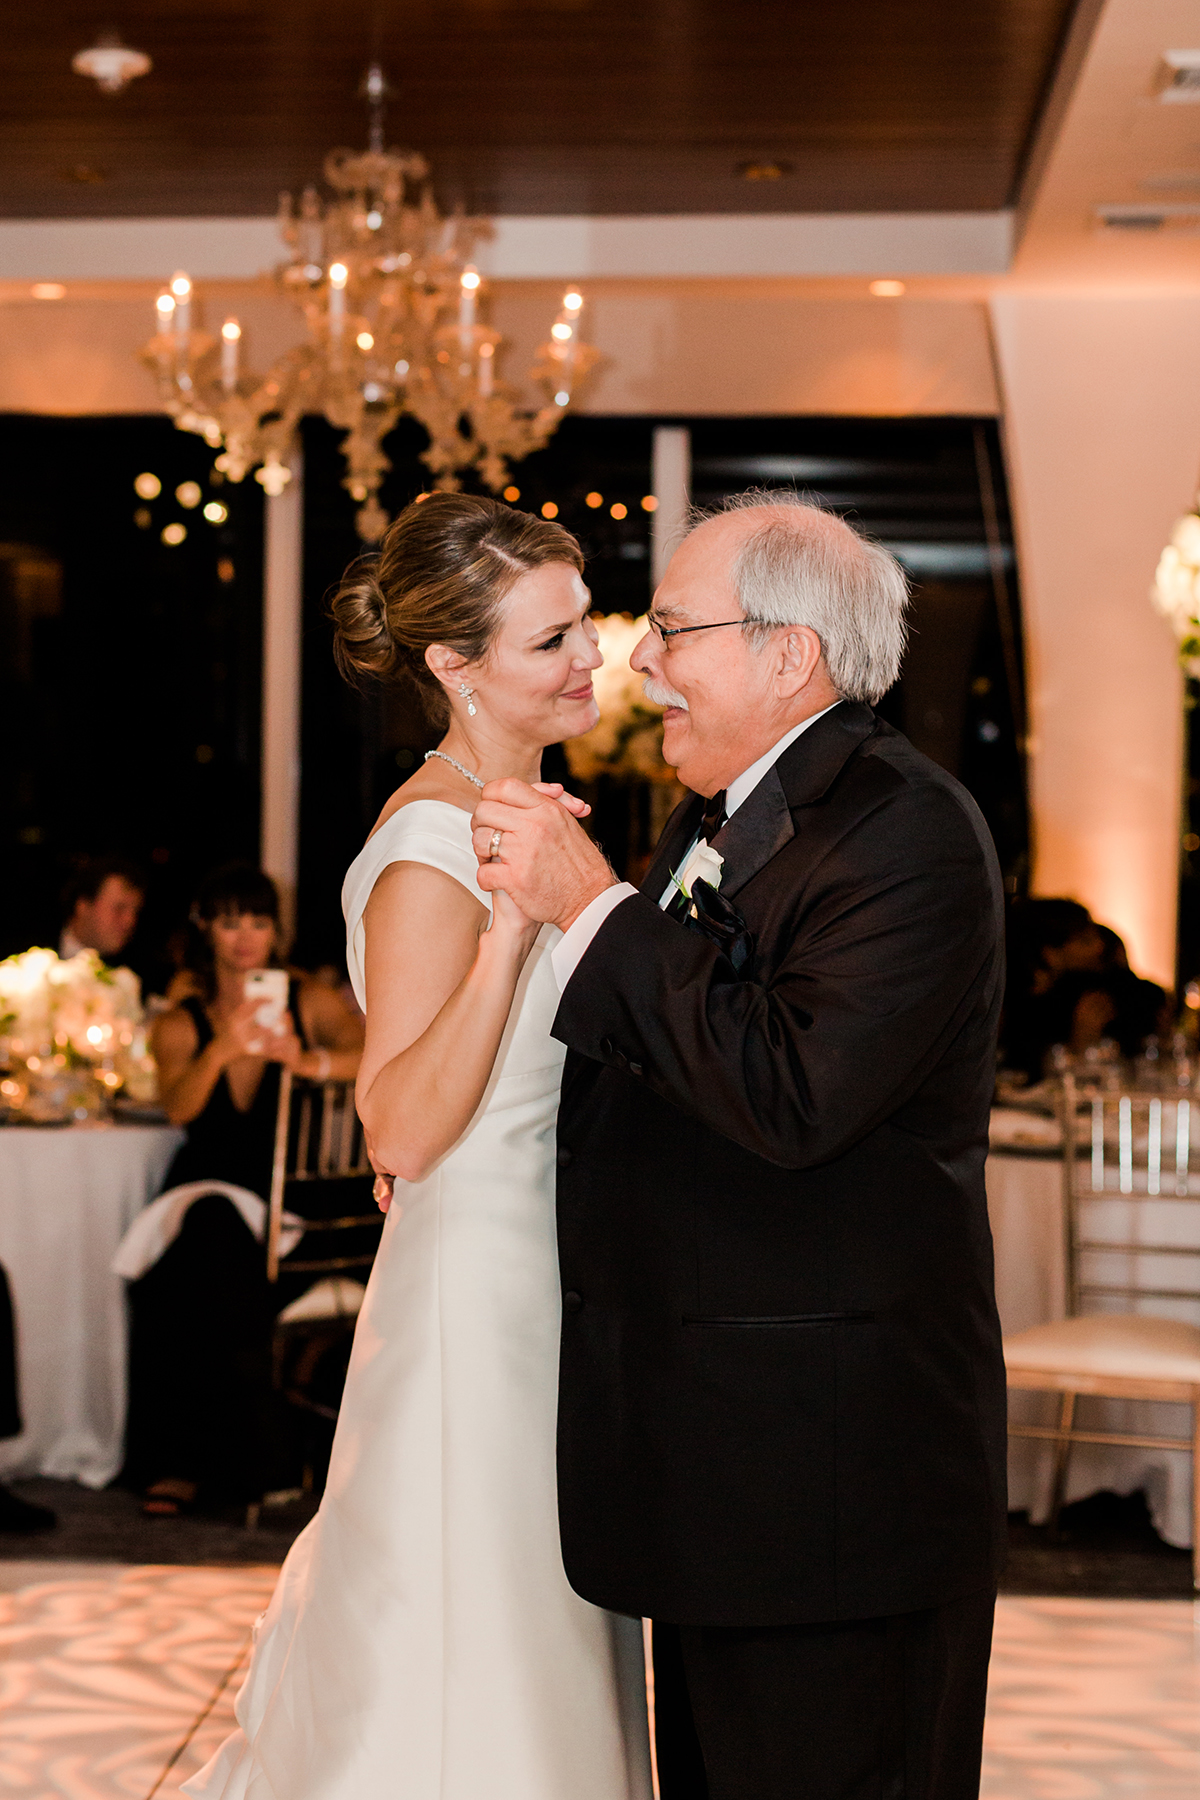 Mr. C Beverly Hills Wedding_Valorie Darling Photography-0135.jpg